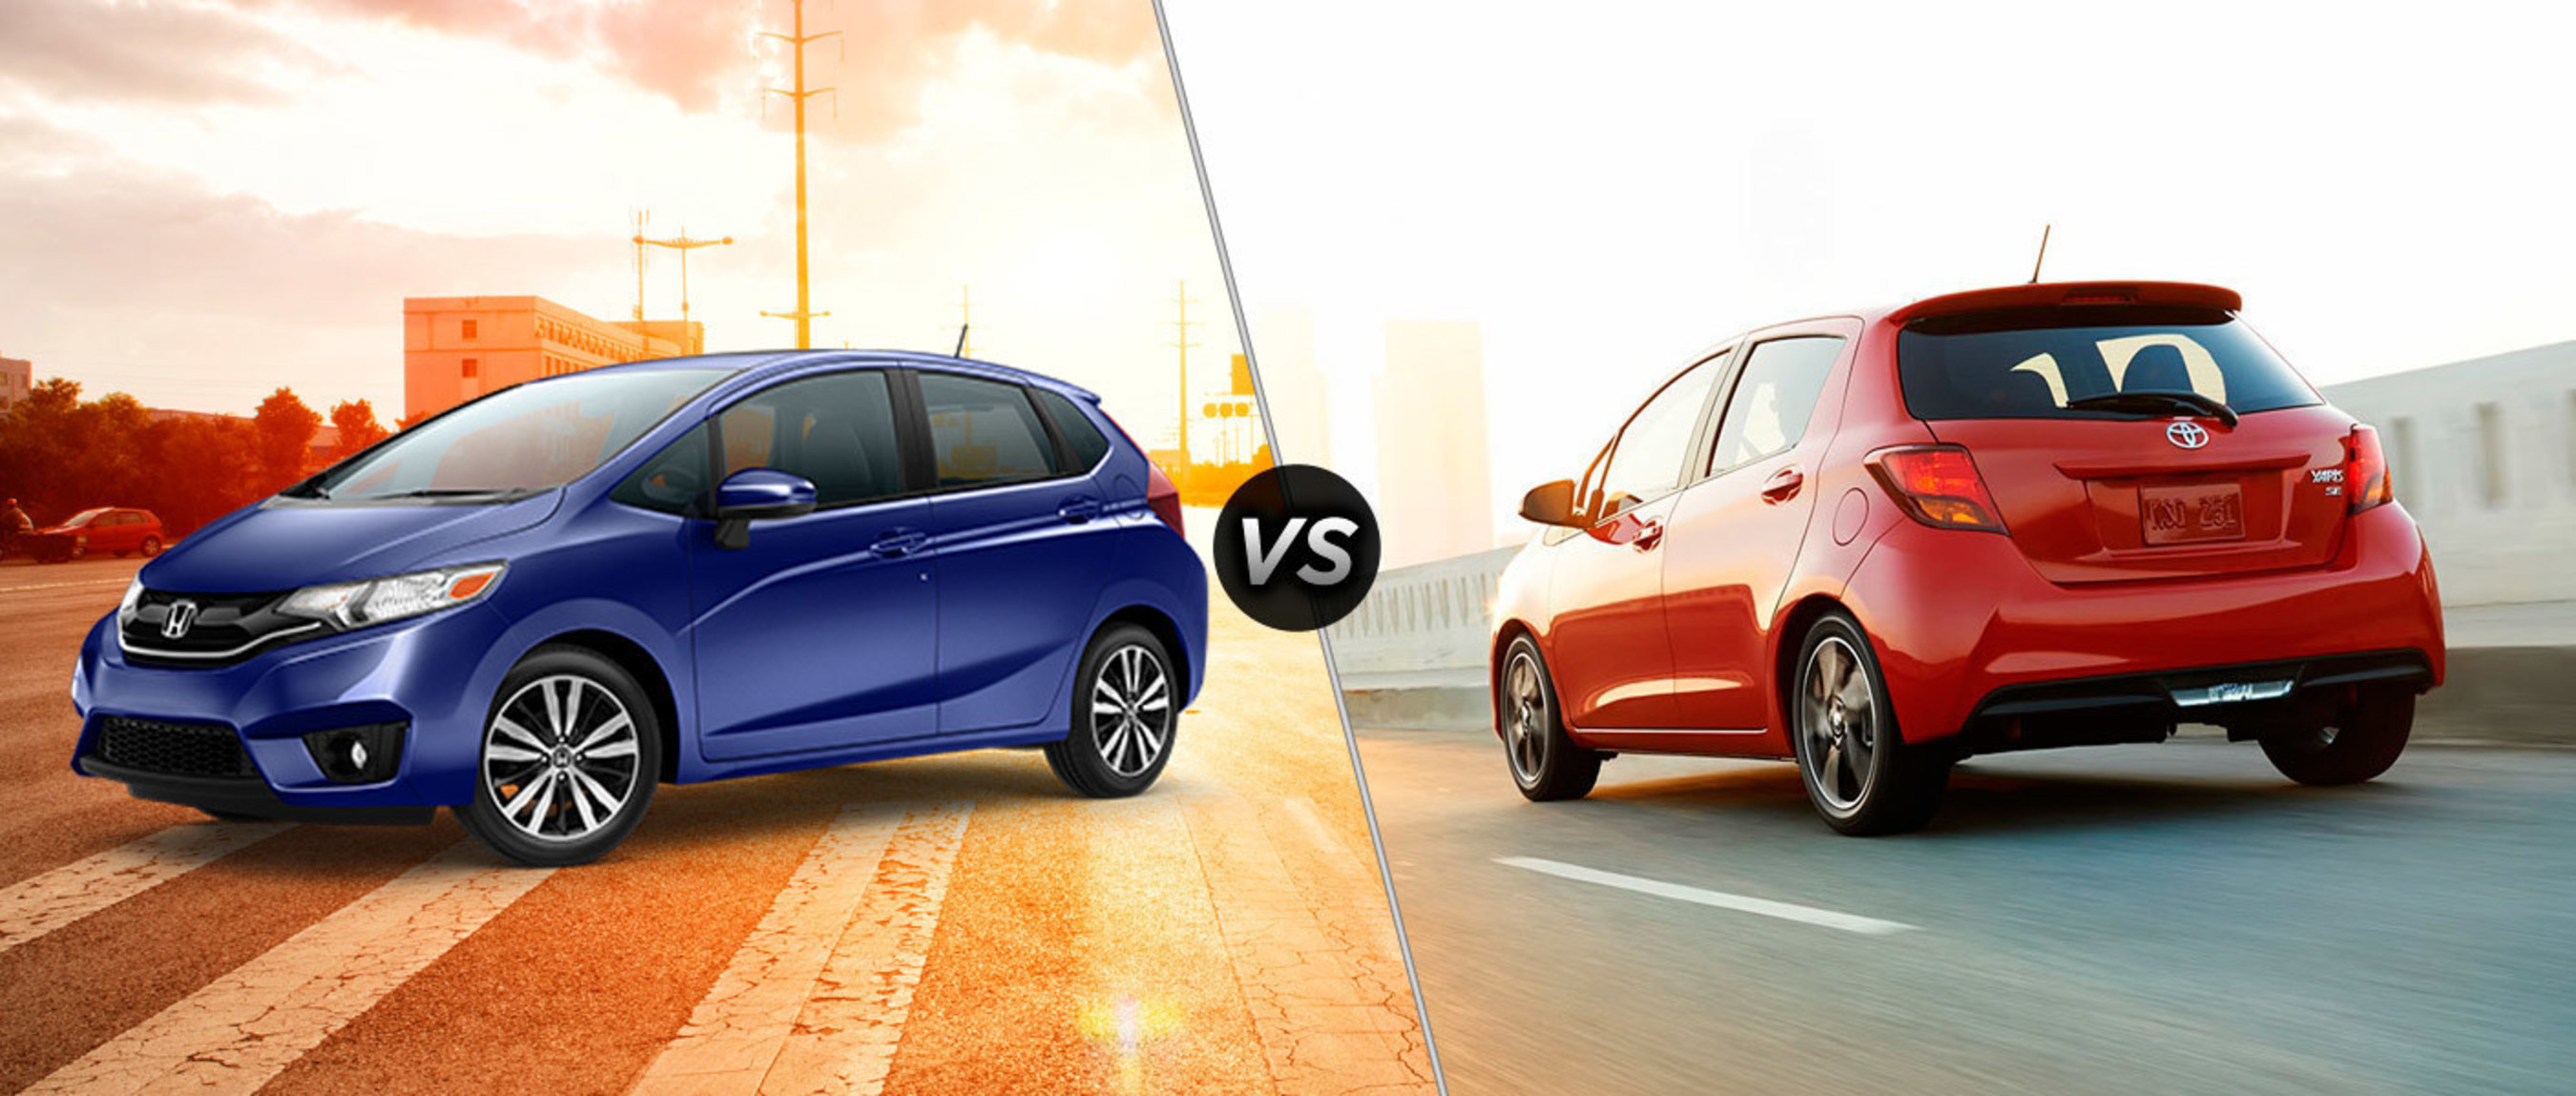 Edmonton dealership offers comparative look at 2015 Honda Fit vs 2015 Toyota Yaris for Canadian buyers